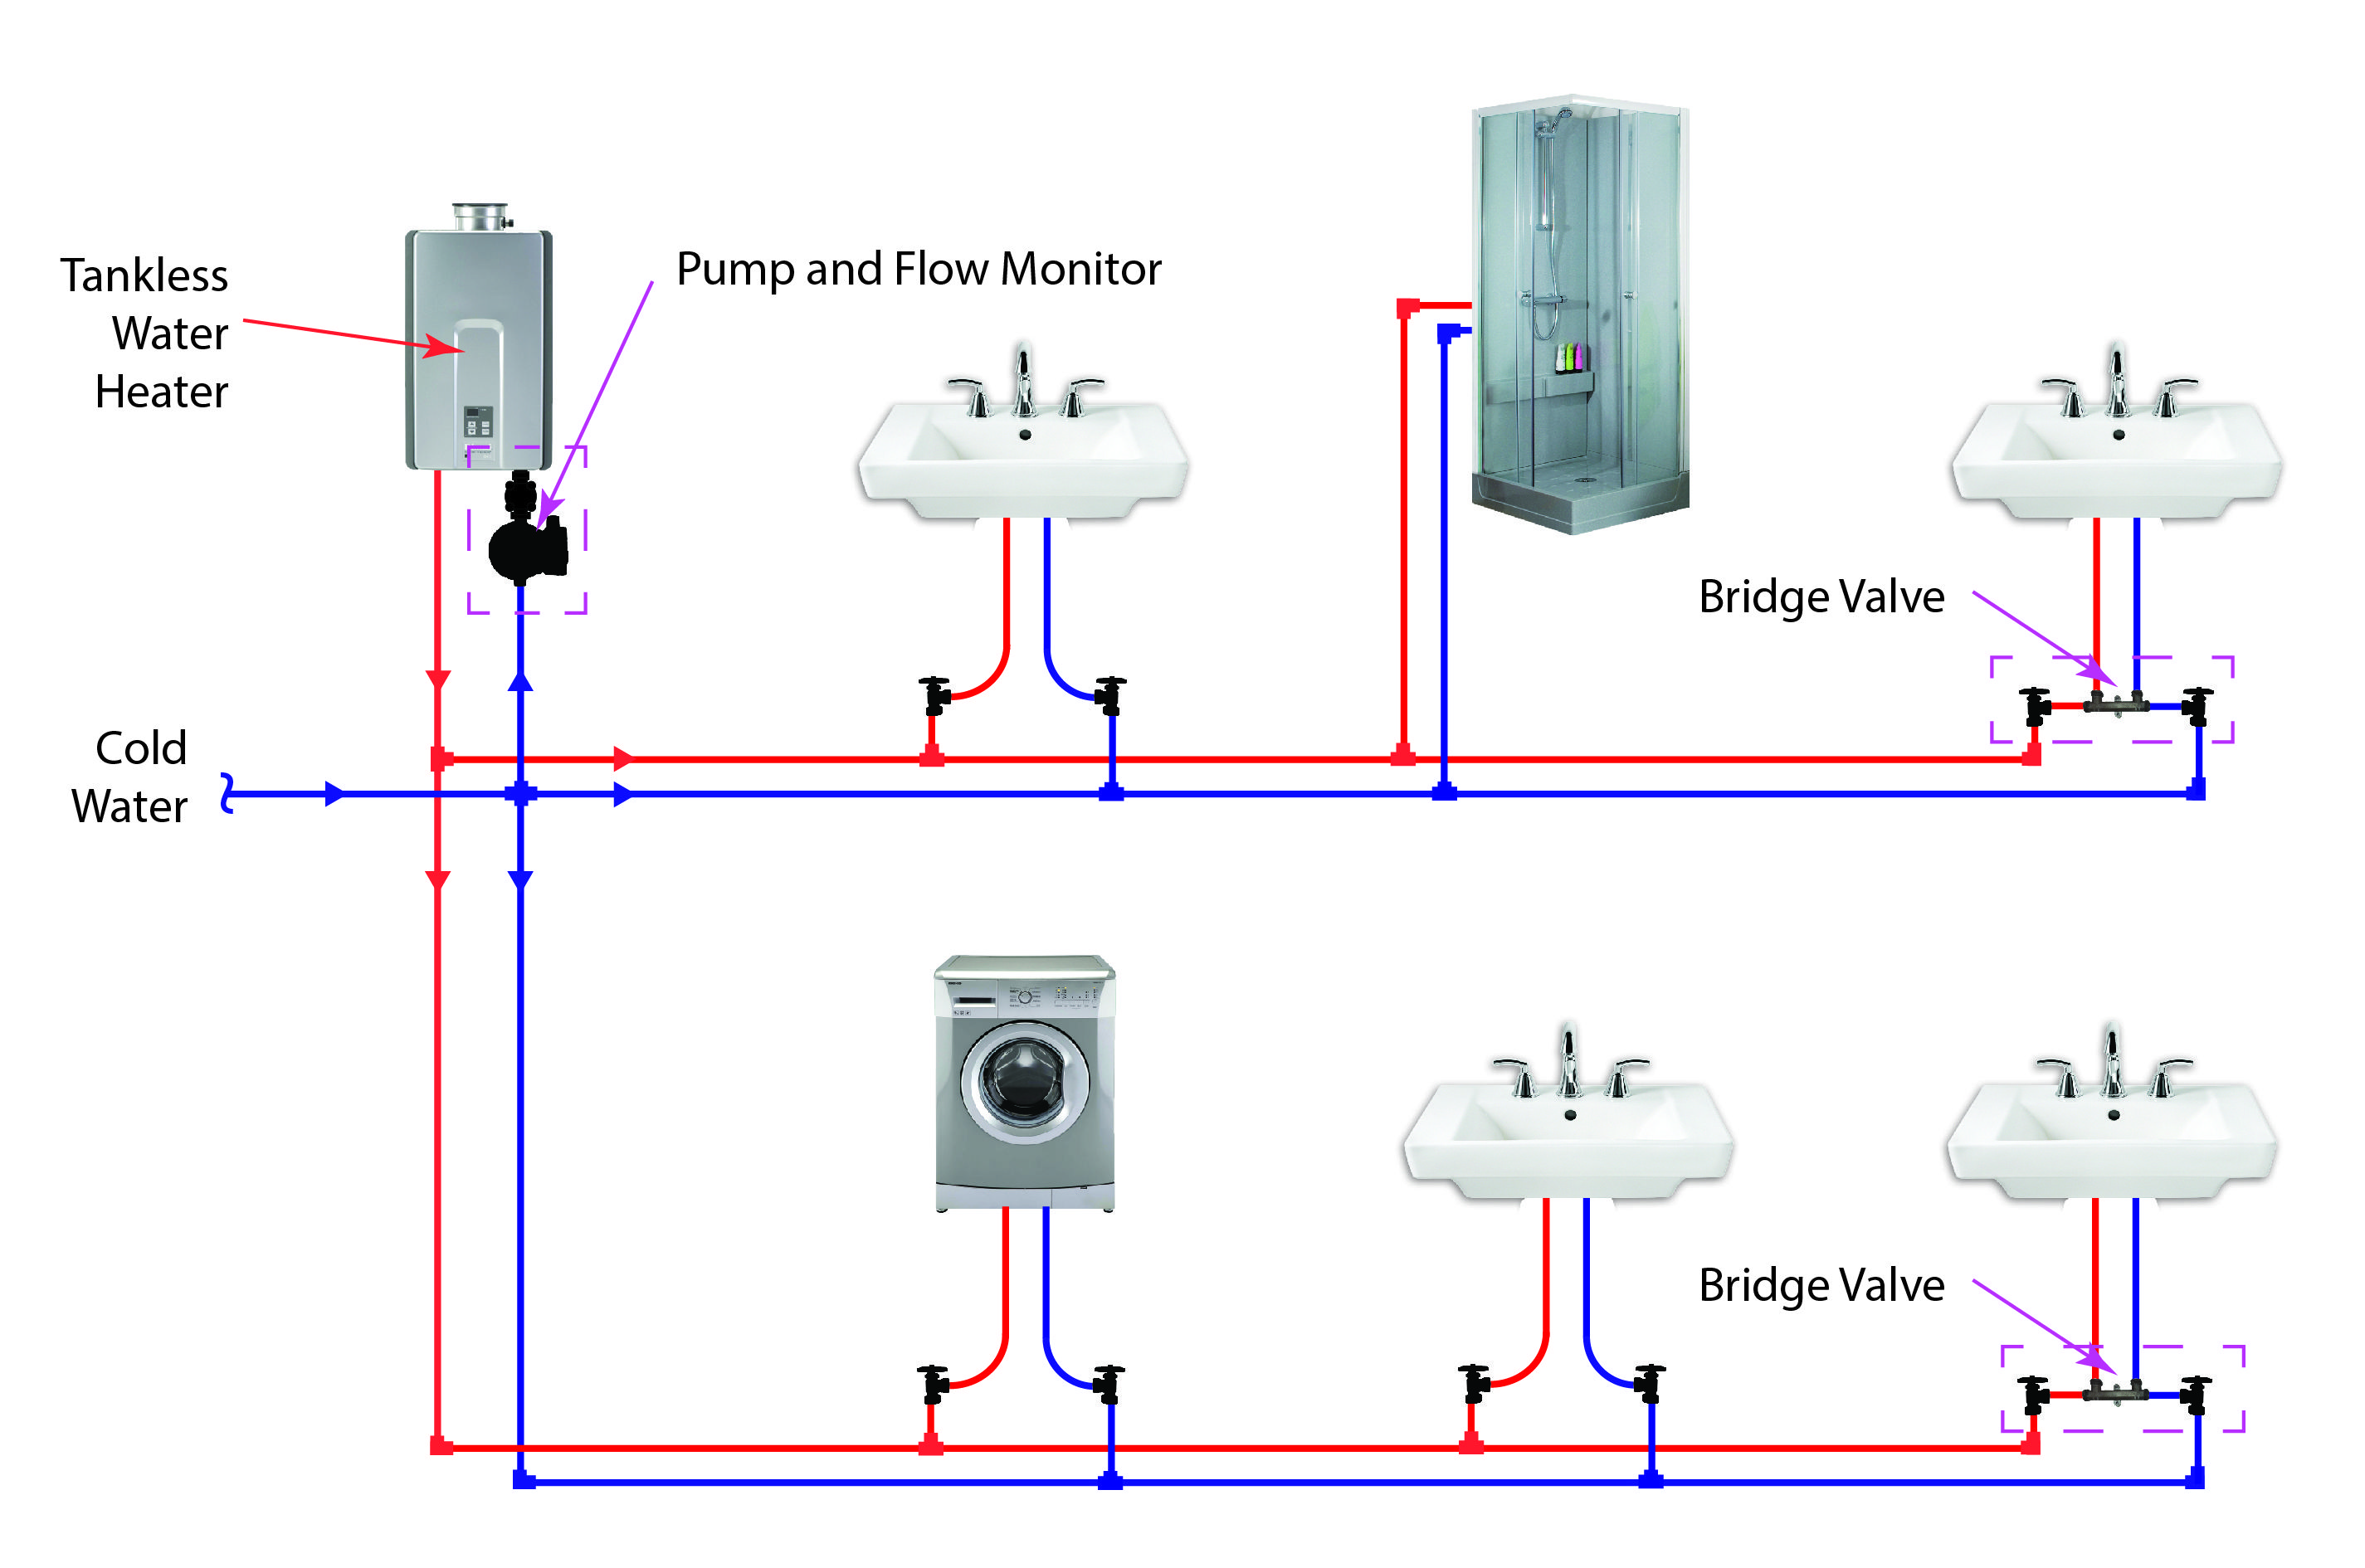 Plumbing layout for a tankless water heater with 2 dead-end lines